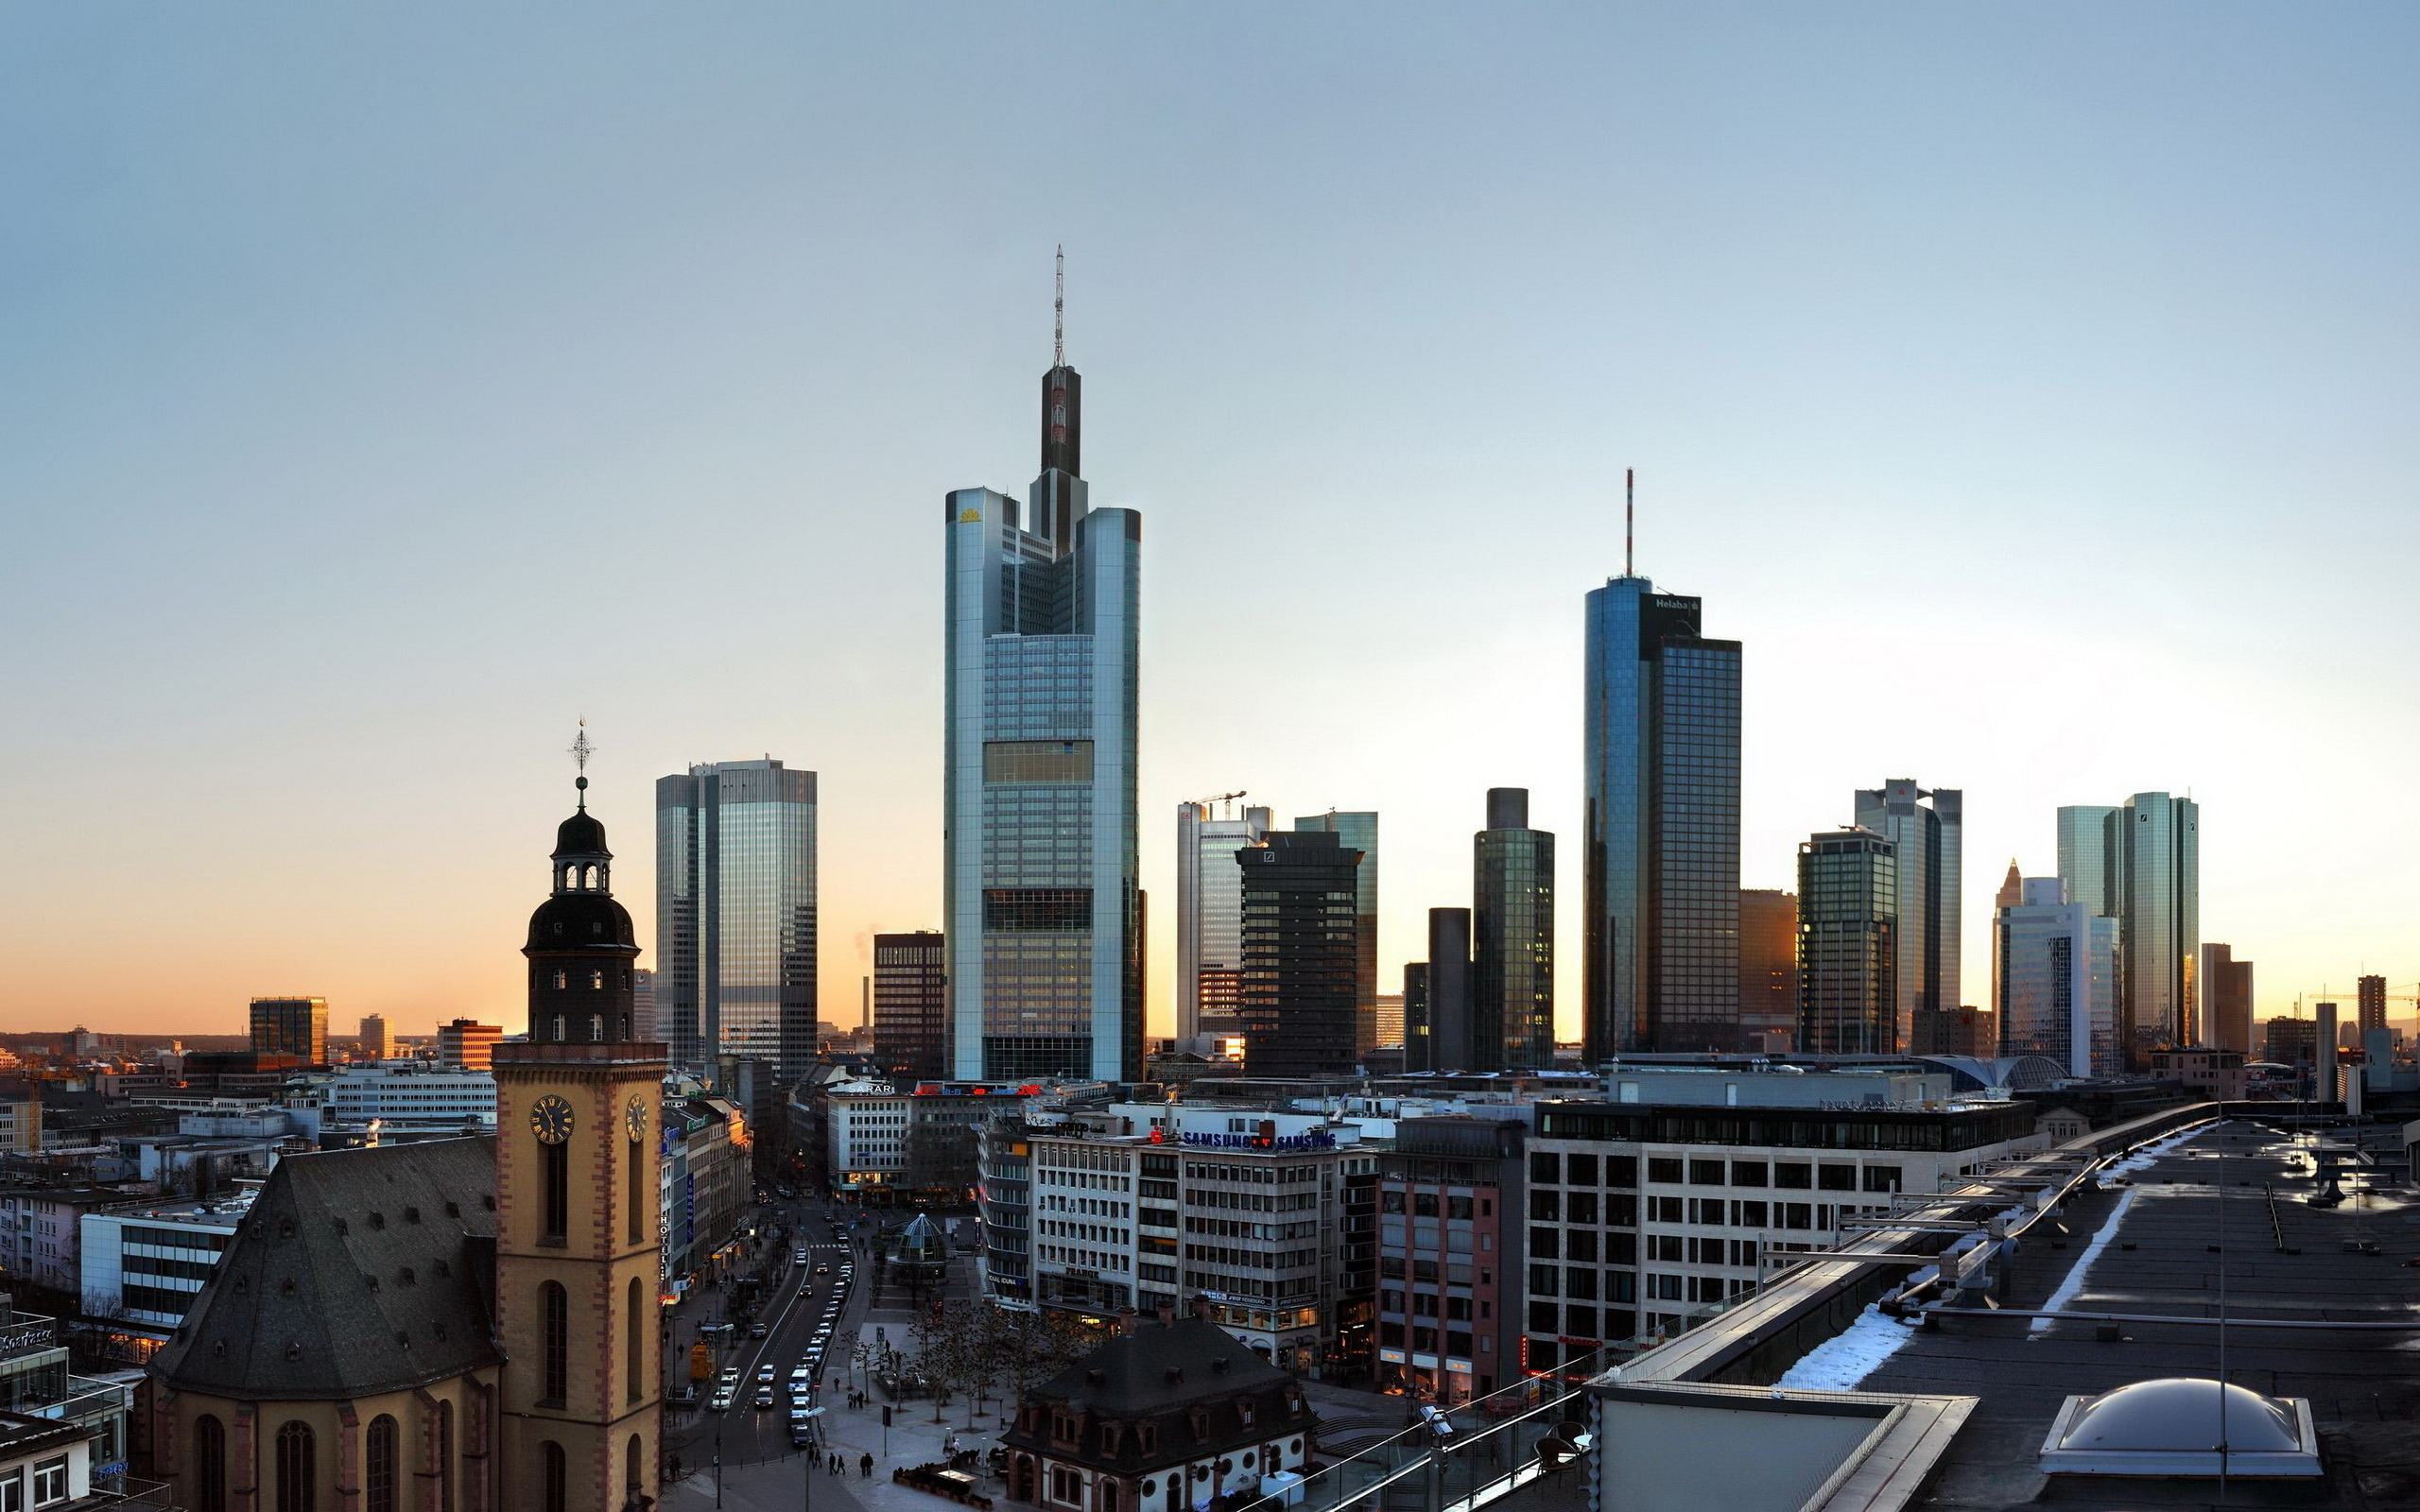 a geography of frankfurt am main Frankfurt, germany latitude and longitude coordinates are: 50110924, 8682127 frankfurt, known also as frankfurt-am-maine, is a large city in central germany, with the population close to 700,000 people it is the fifth most populous city of the country.